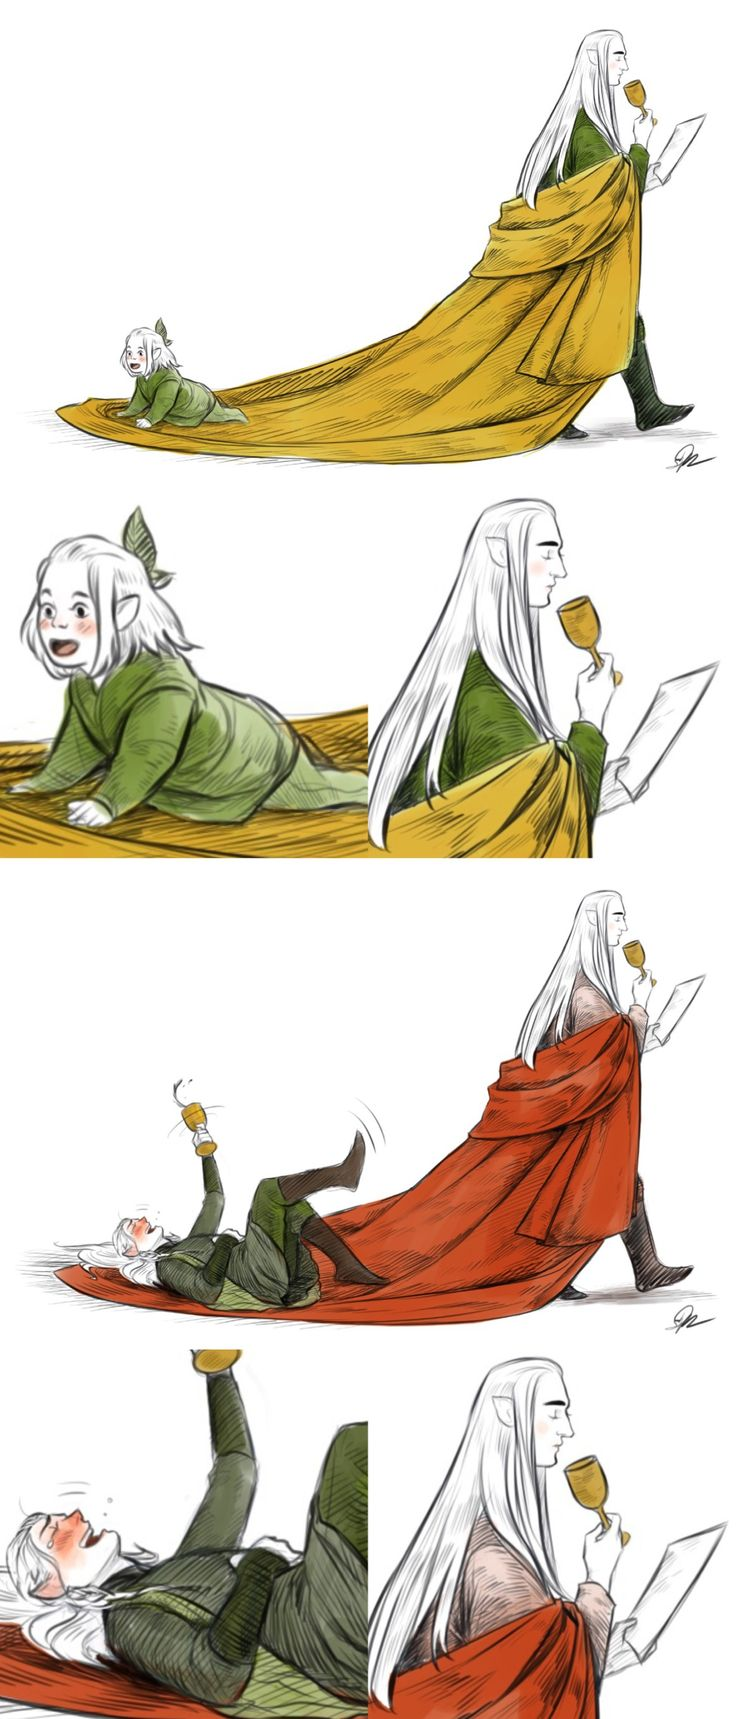 Legolas always loved riding the end of his father's robes as a little elfing - Thranduil never minded and always felt quite amused by it… …even when Legolas was older and drunk.  ;-D